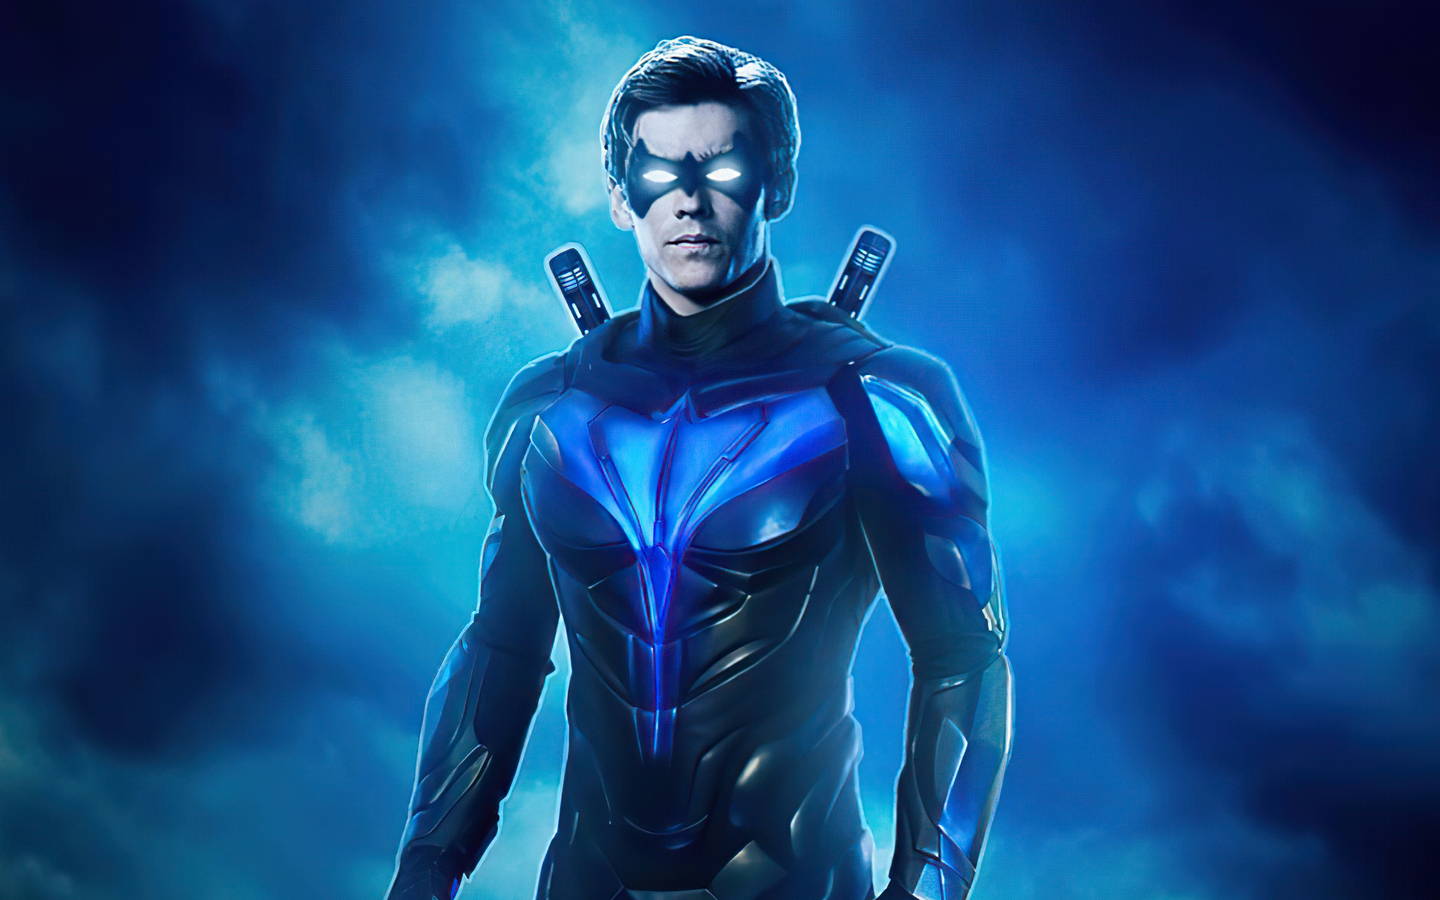 nightwing-blue-suit-4k-li.jpg